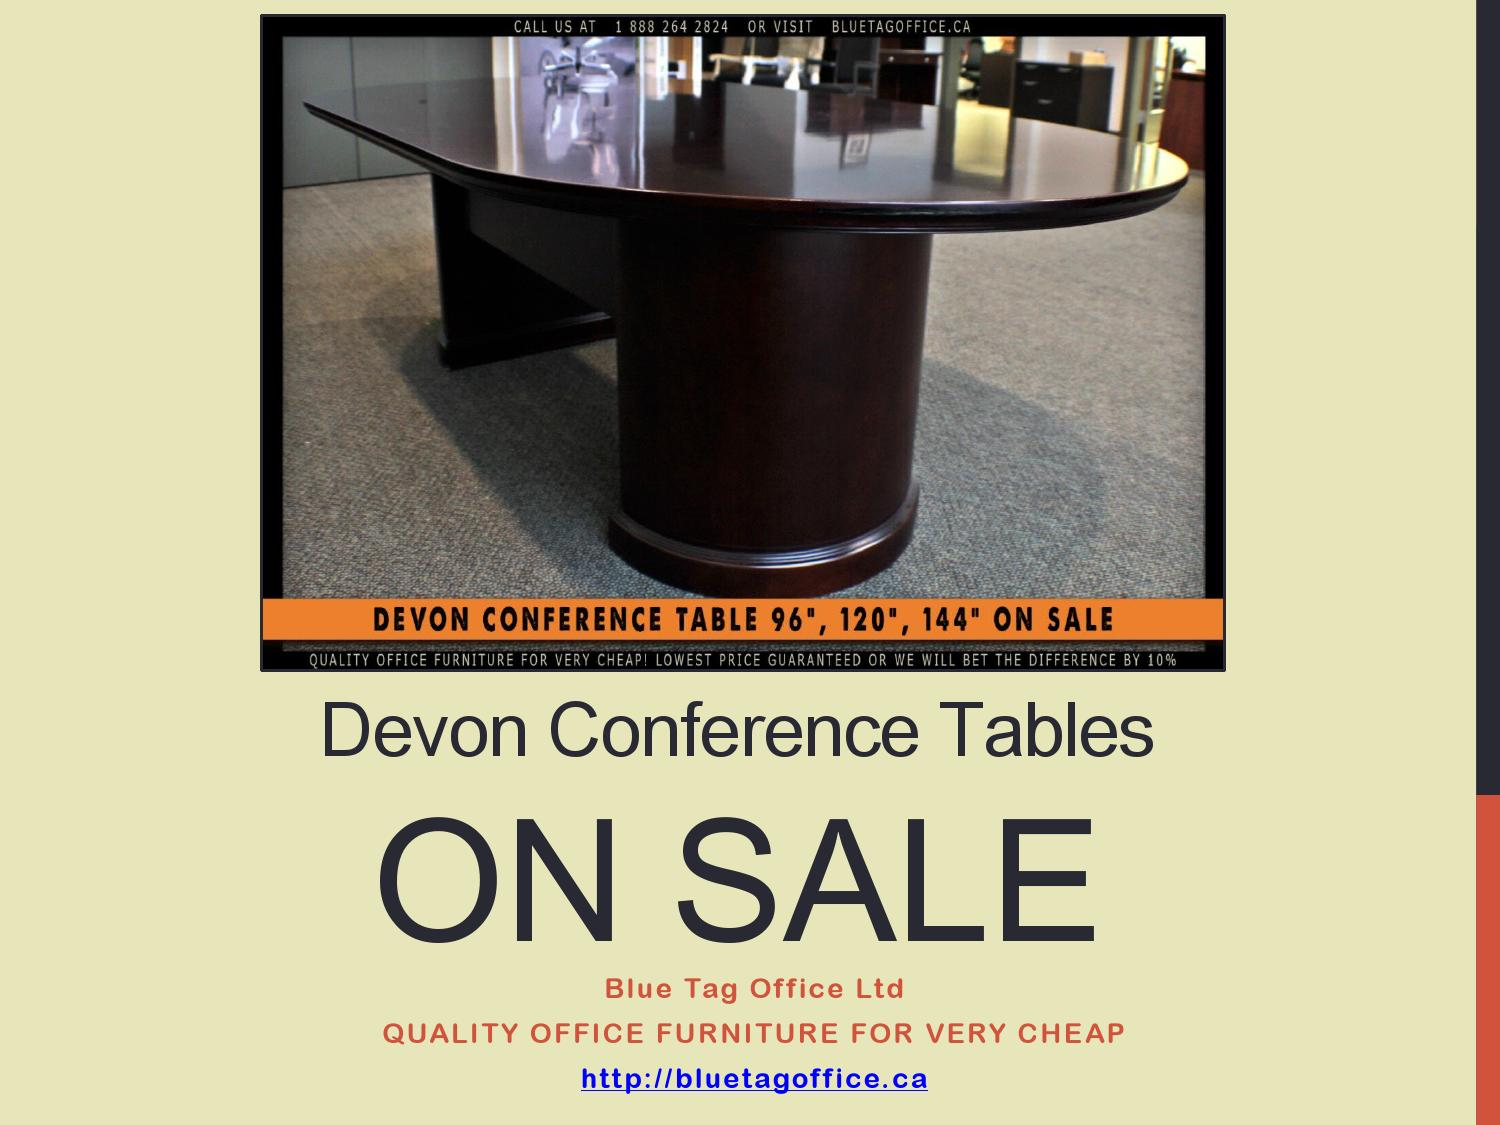 Devon Conference Tables On Sale At Blue Tag Office By Blue Tag Office Ltd Issuu